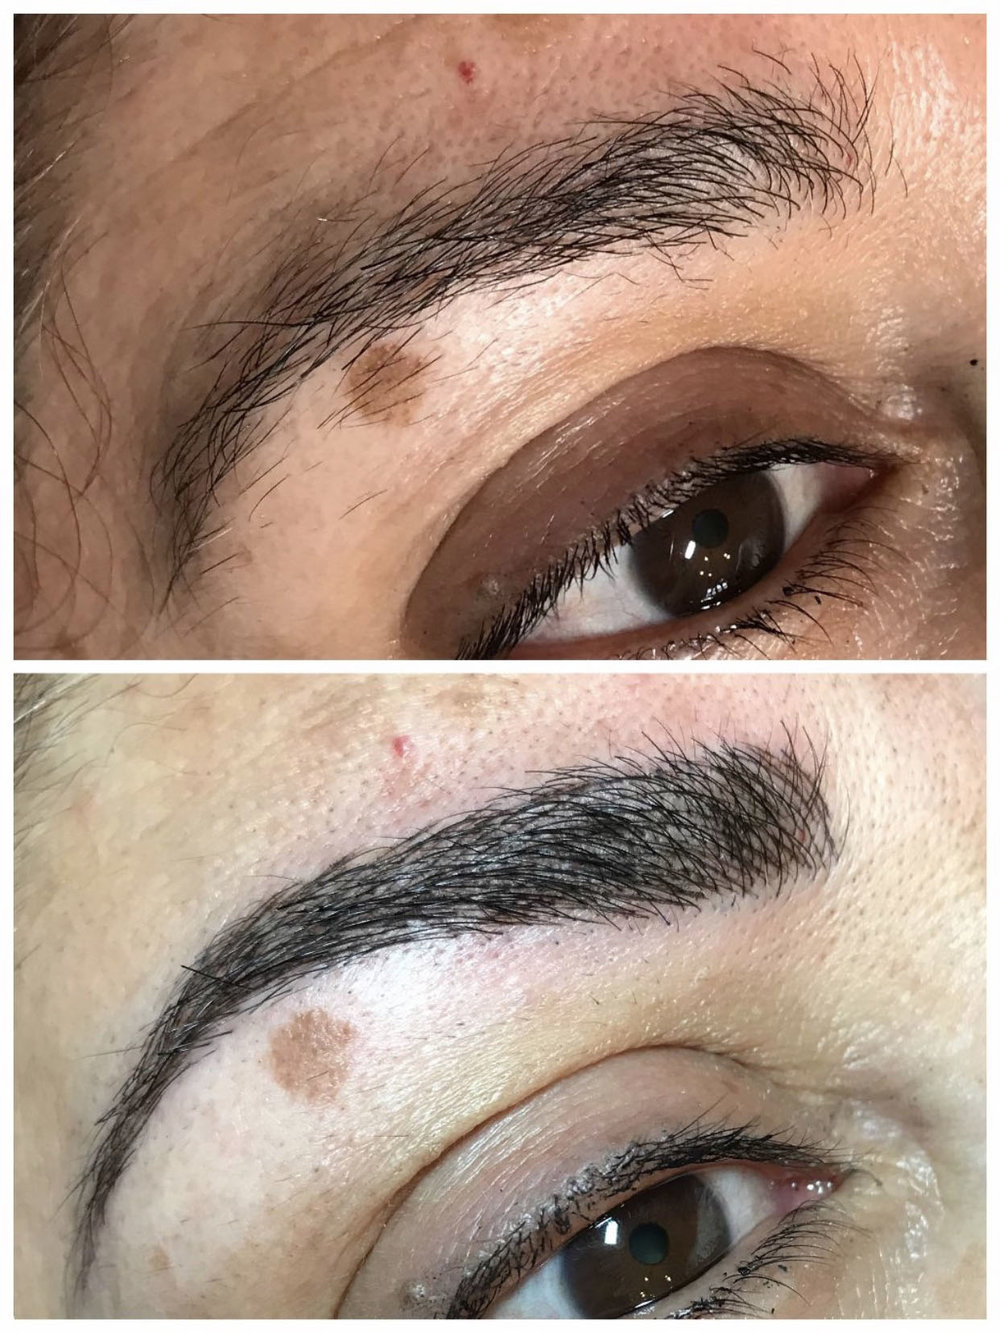 - Andriana does eyebrows beautifully and I love how natural mine look. I normally have to pencil in at my arches, but not anymore! She helped my brows look fuller and shaped better than ever before...thank you, Andriana!~Jenna